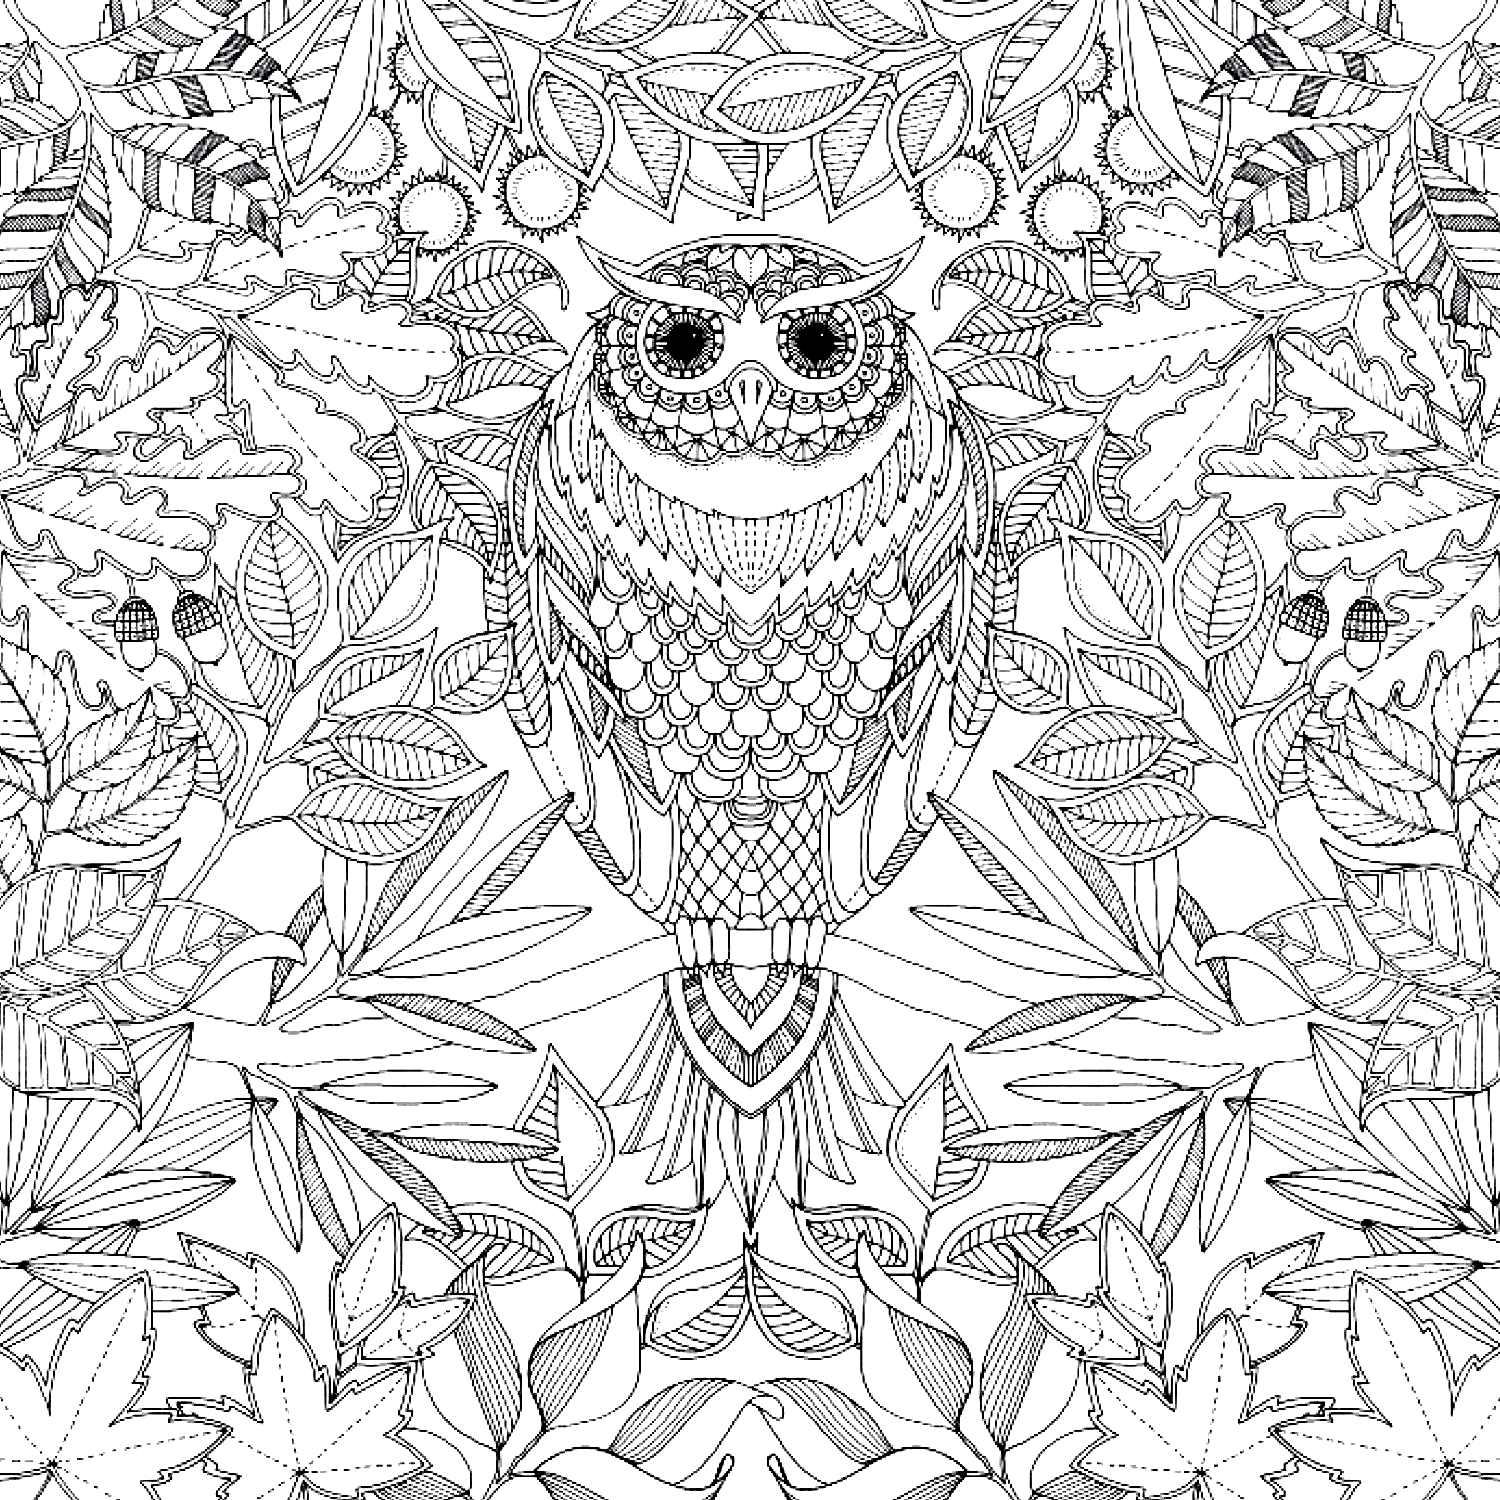 in addition bluecoloring2 together with 94f0191c170df6be74c6f045bf70ec36 further  moreover 2158953985 679e88ccd3 b moreover  also  in addition  also  besides  likewise . on inspirational coloring pages for adults finished drawing